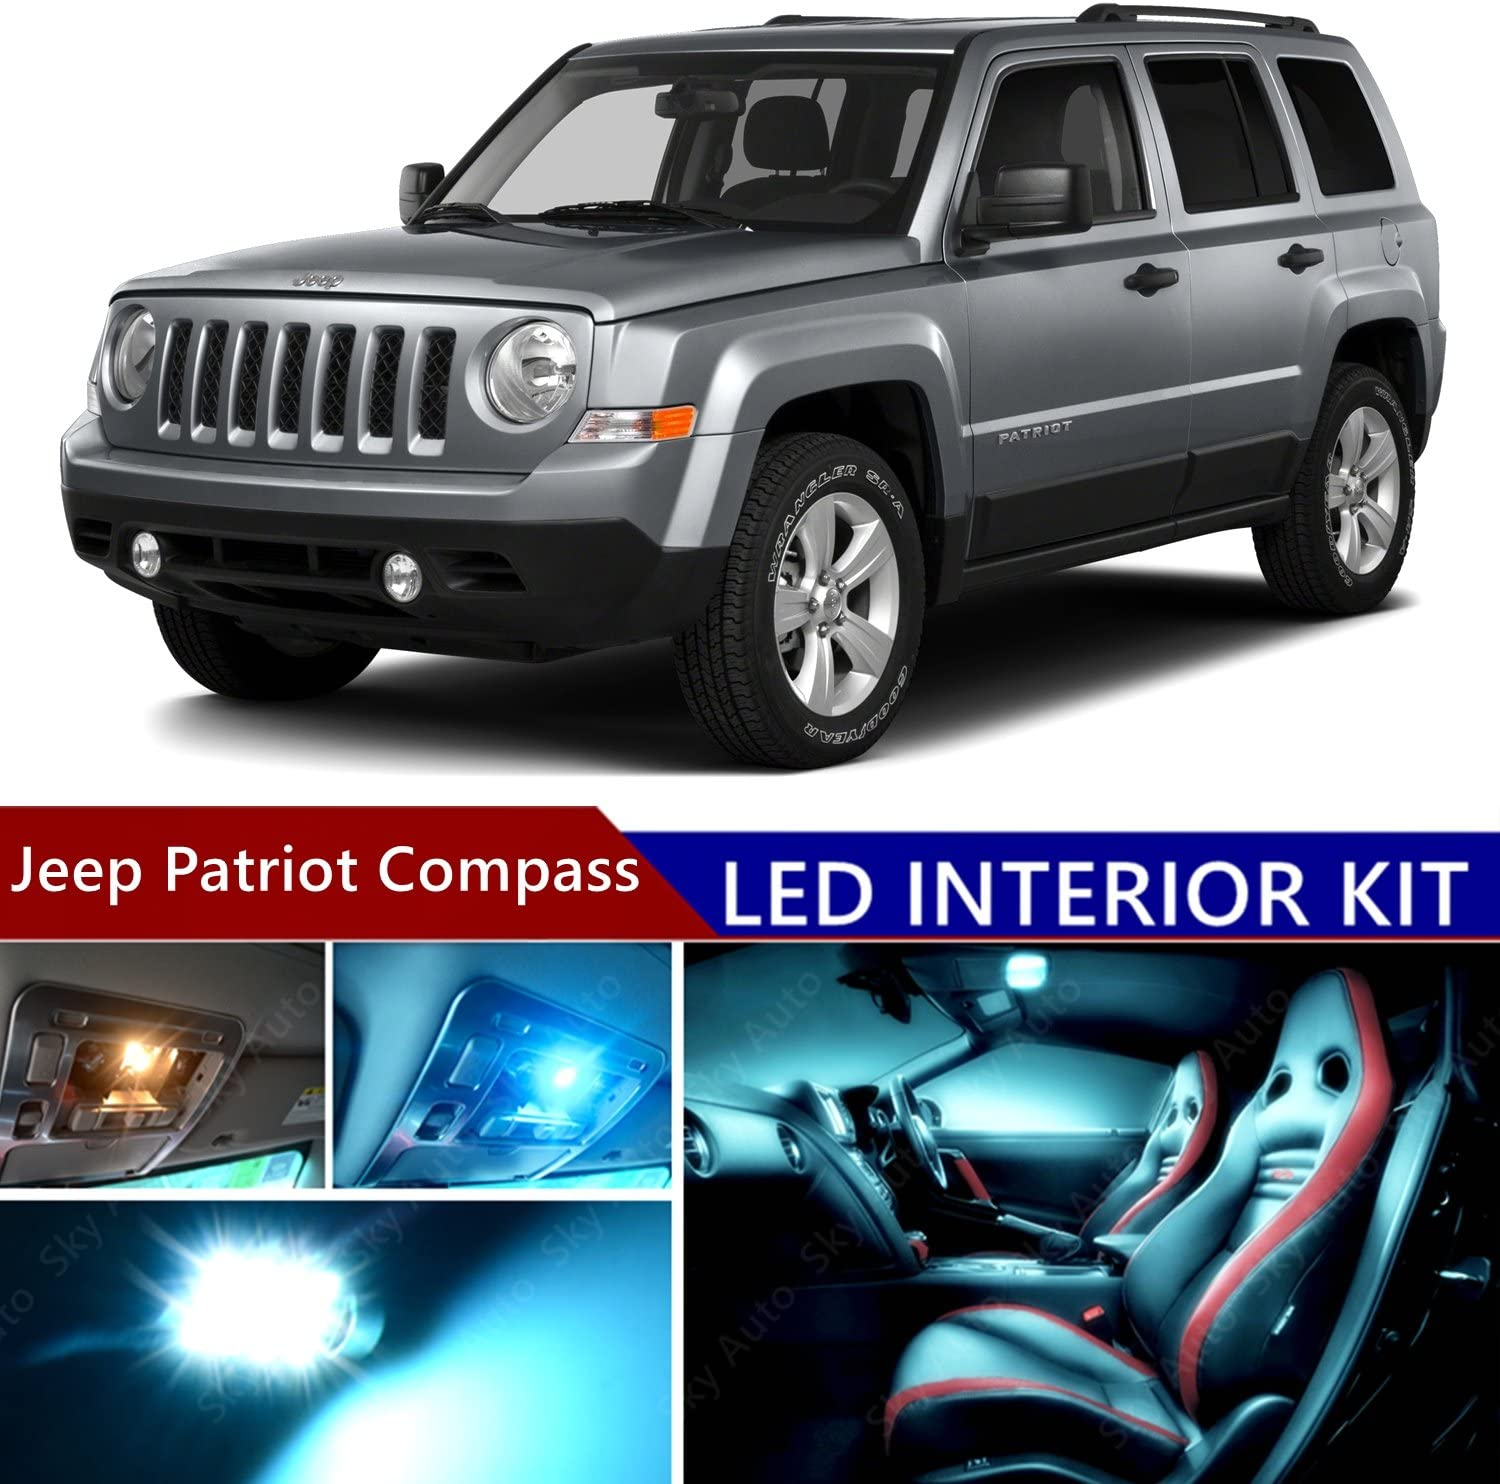 OEM 2007-2015 Jeep Compass License Plate LED Light Assembly Bulbs Tail Lift Gate